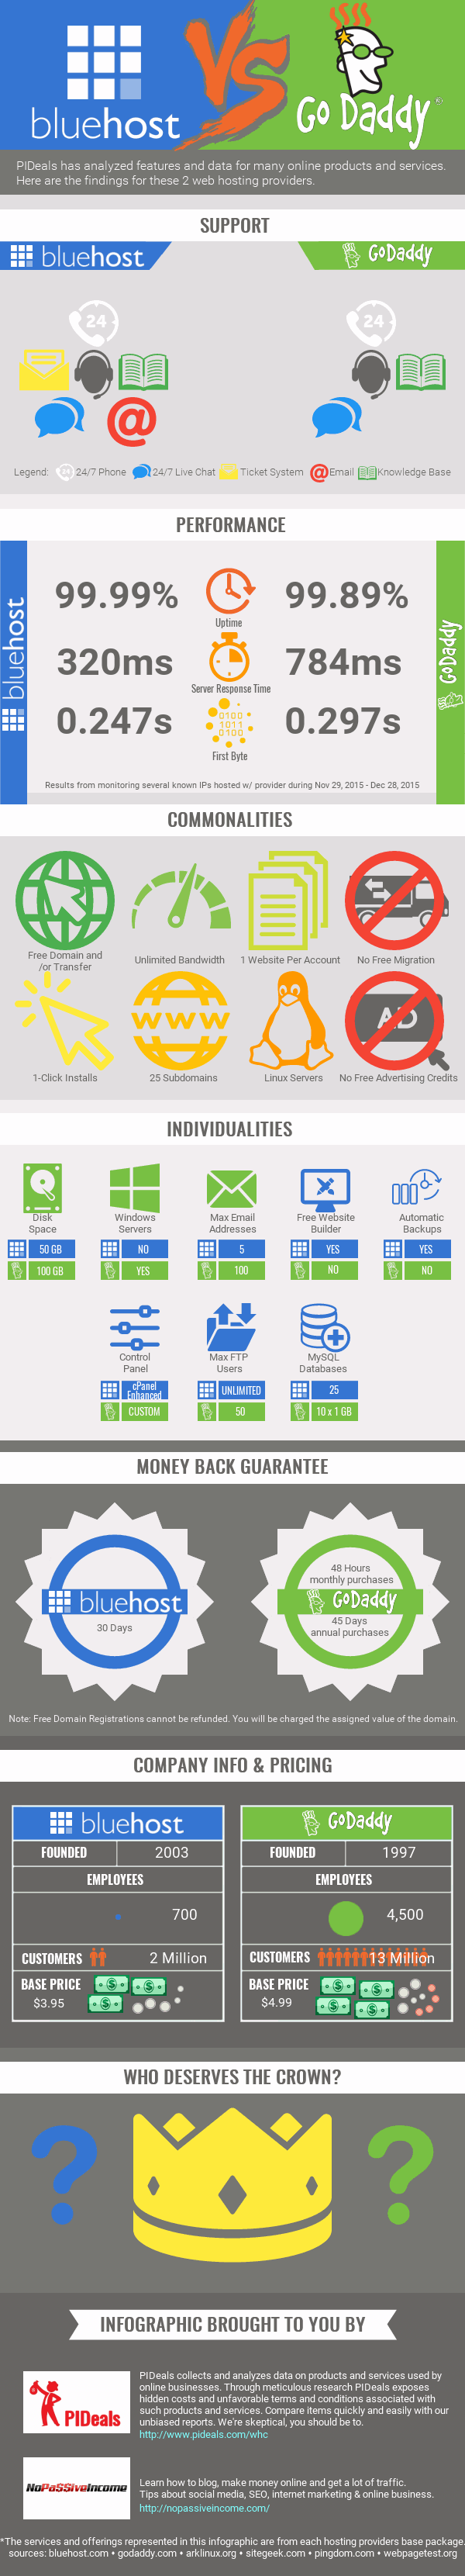 Bluehost vs Godaddy Review by [Infographic] [Nov 2018